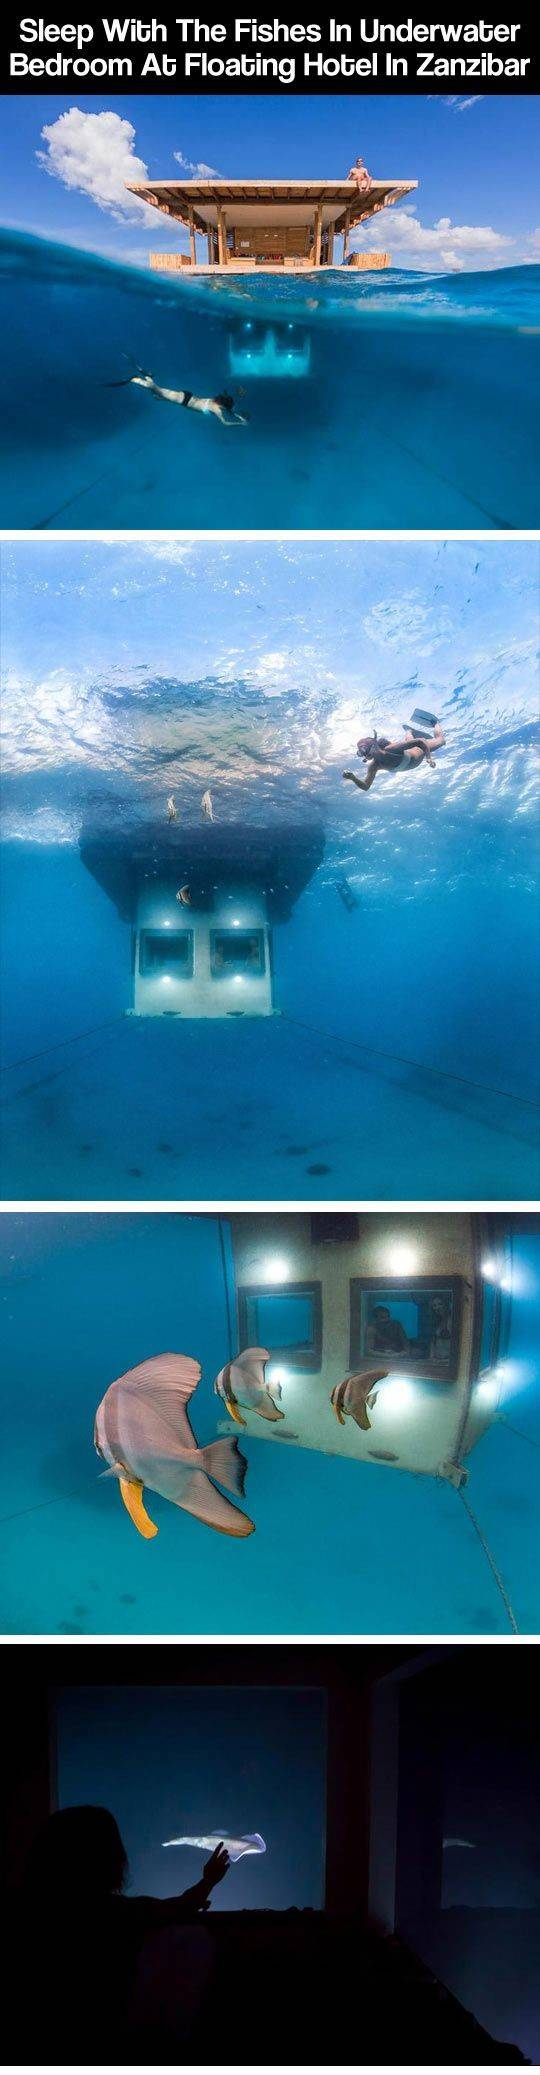 Floating Hotel Zanzibar Places Spaces Pinterest